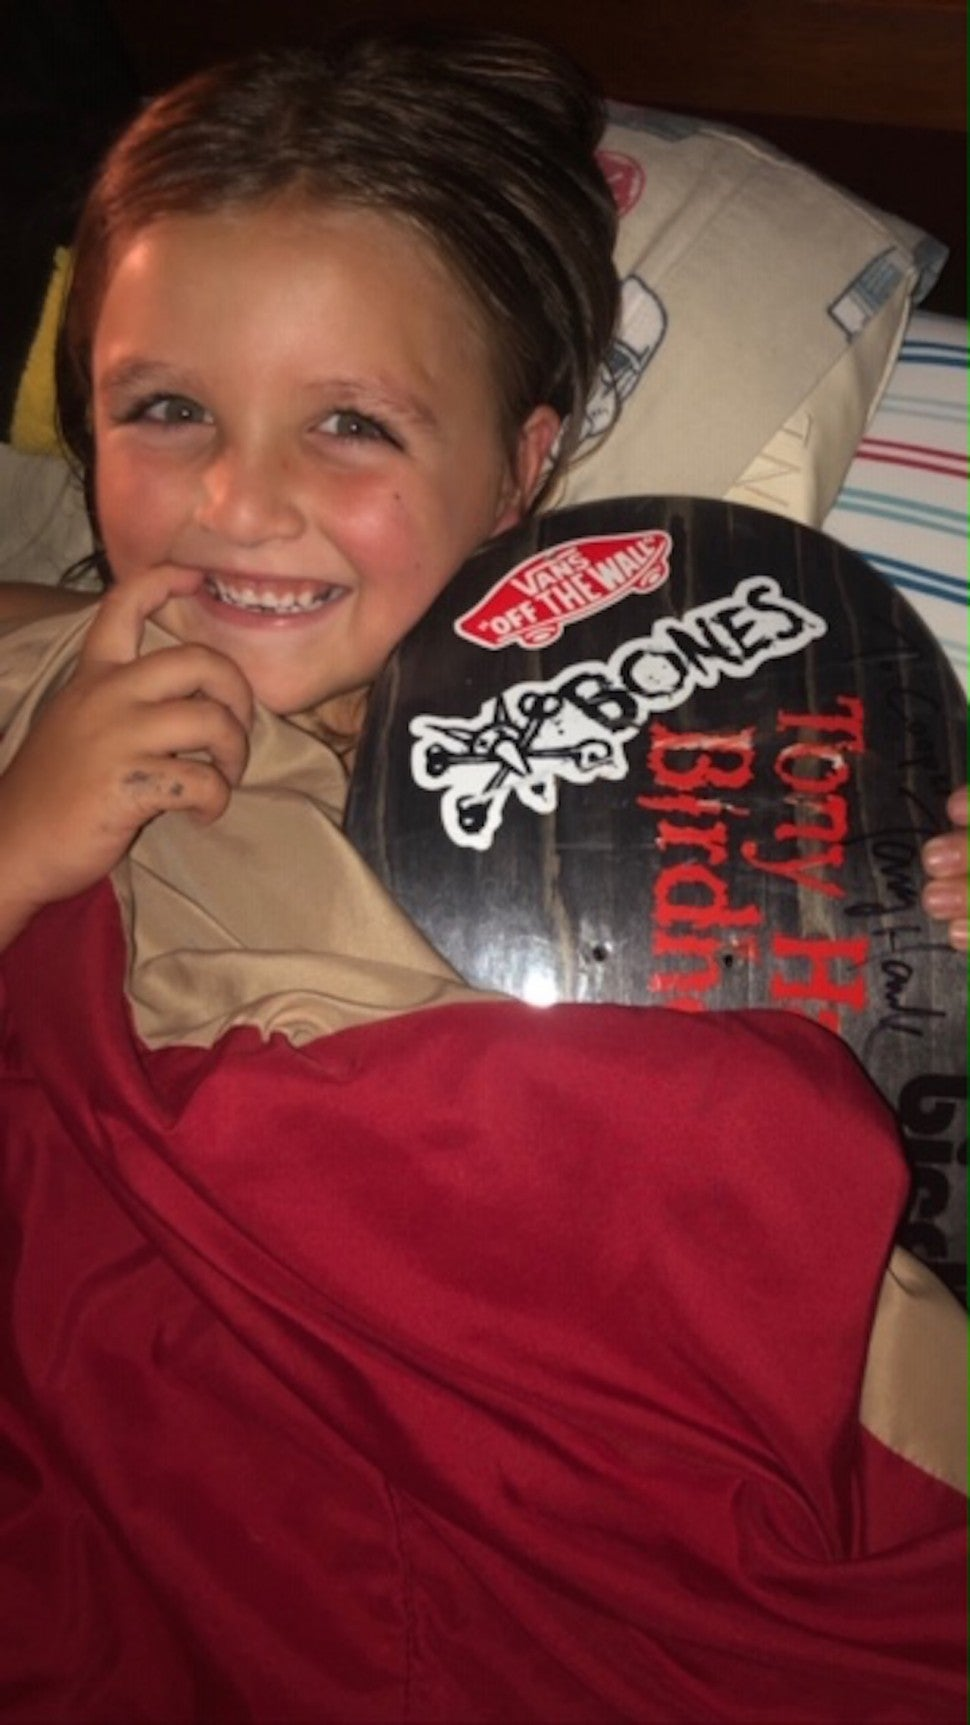 Cooper Morgan with Tony Hawk's skateboard